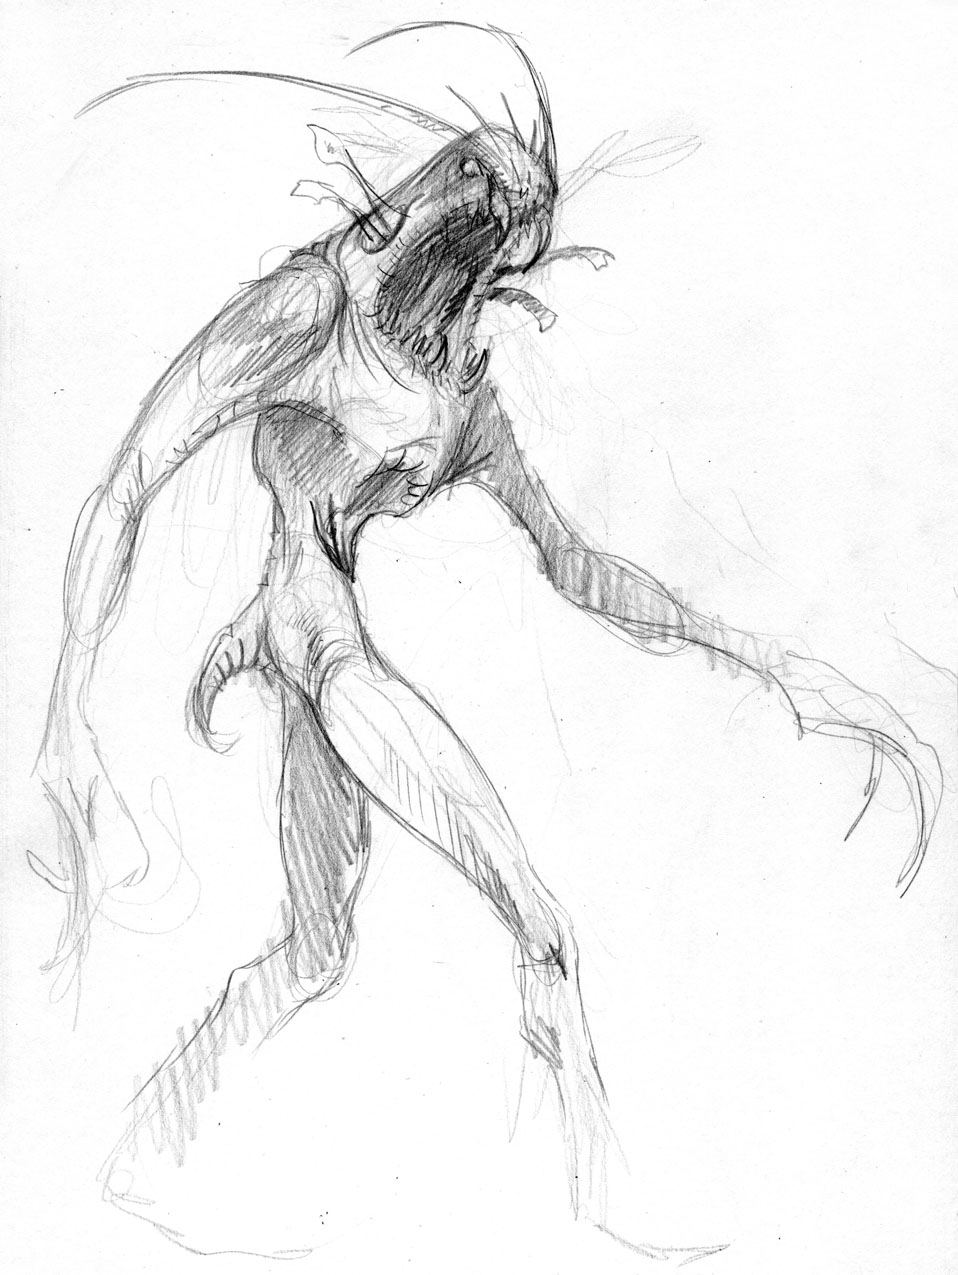 joshhagen_sketch_feb11th2013b